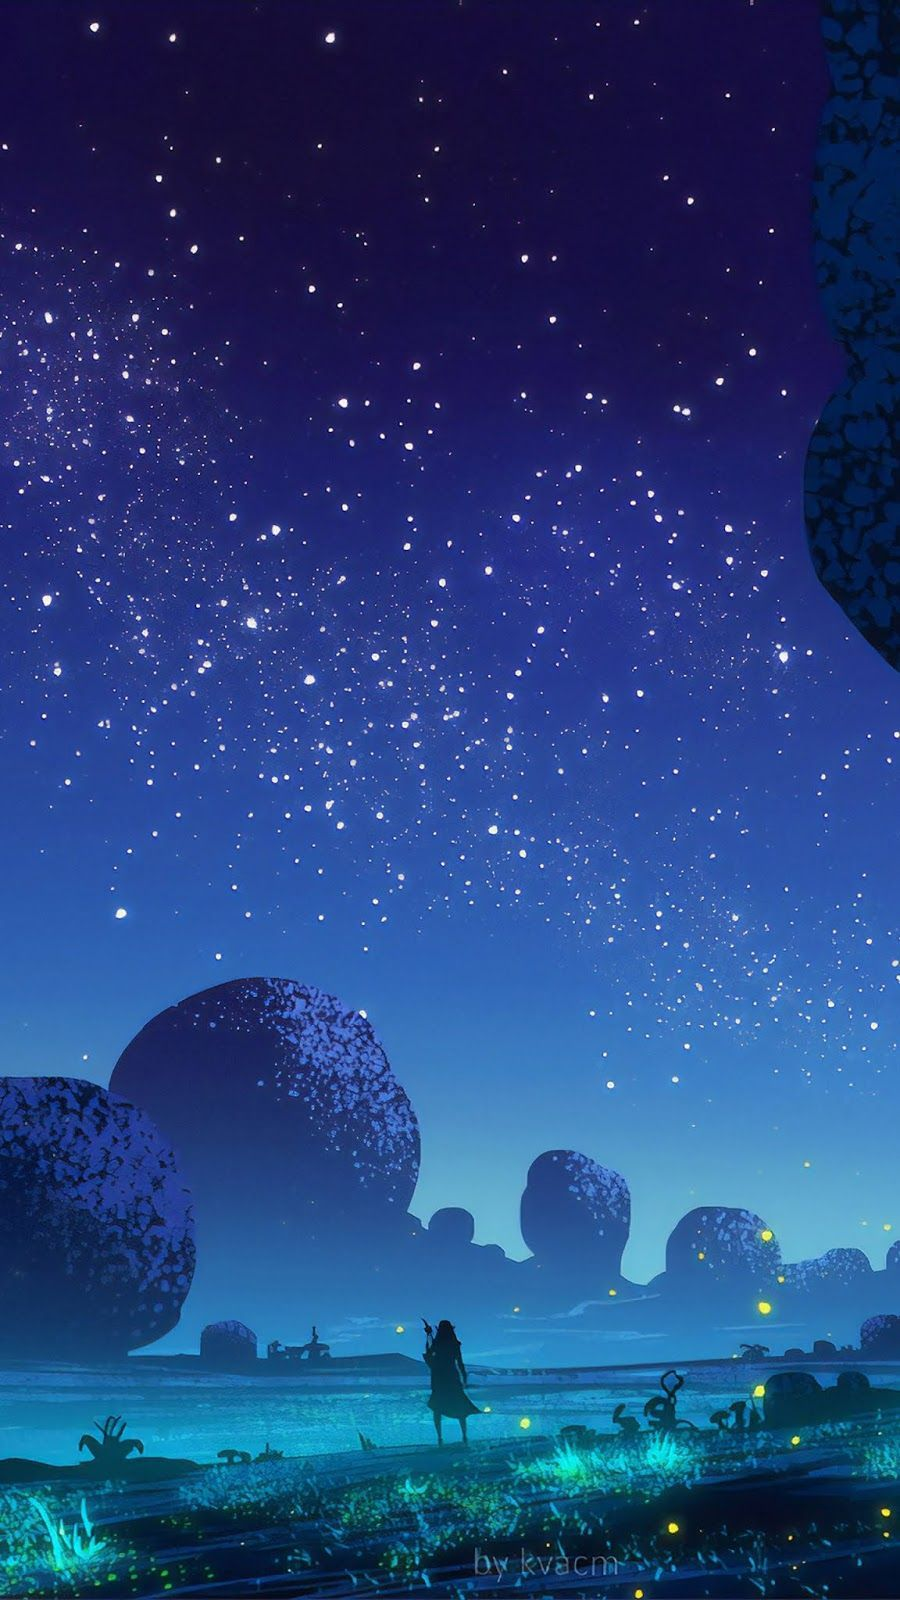 Under The Night Sky Wallpaper Iphone Android Background Followme Night Scenery Sky Anime Night Skies Iphone anime night sky wallpaper hd